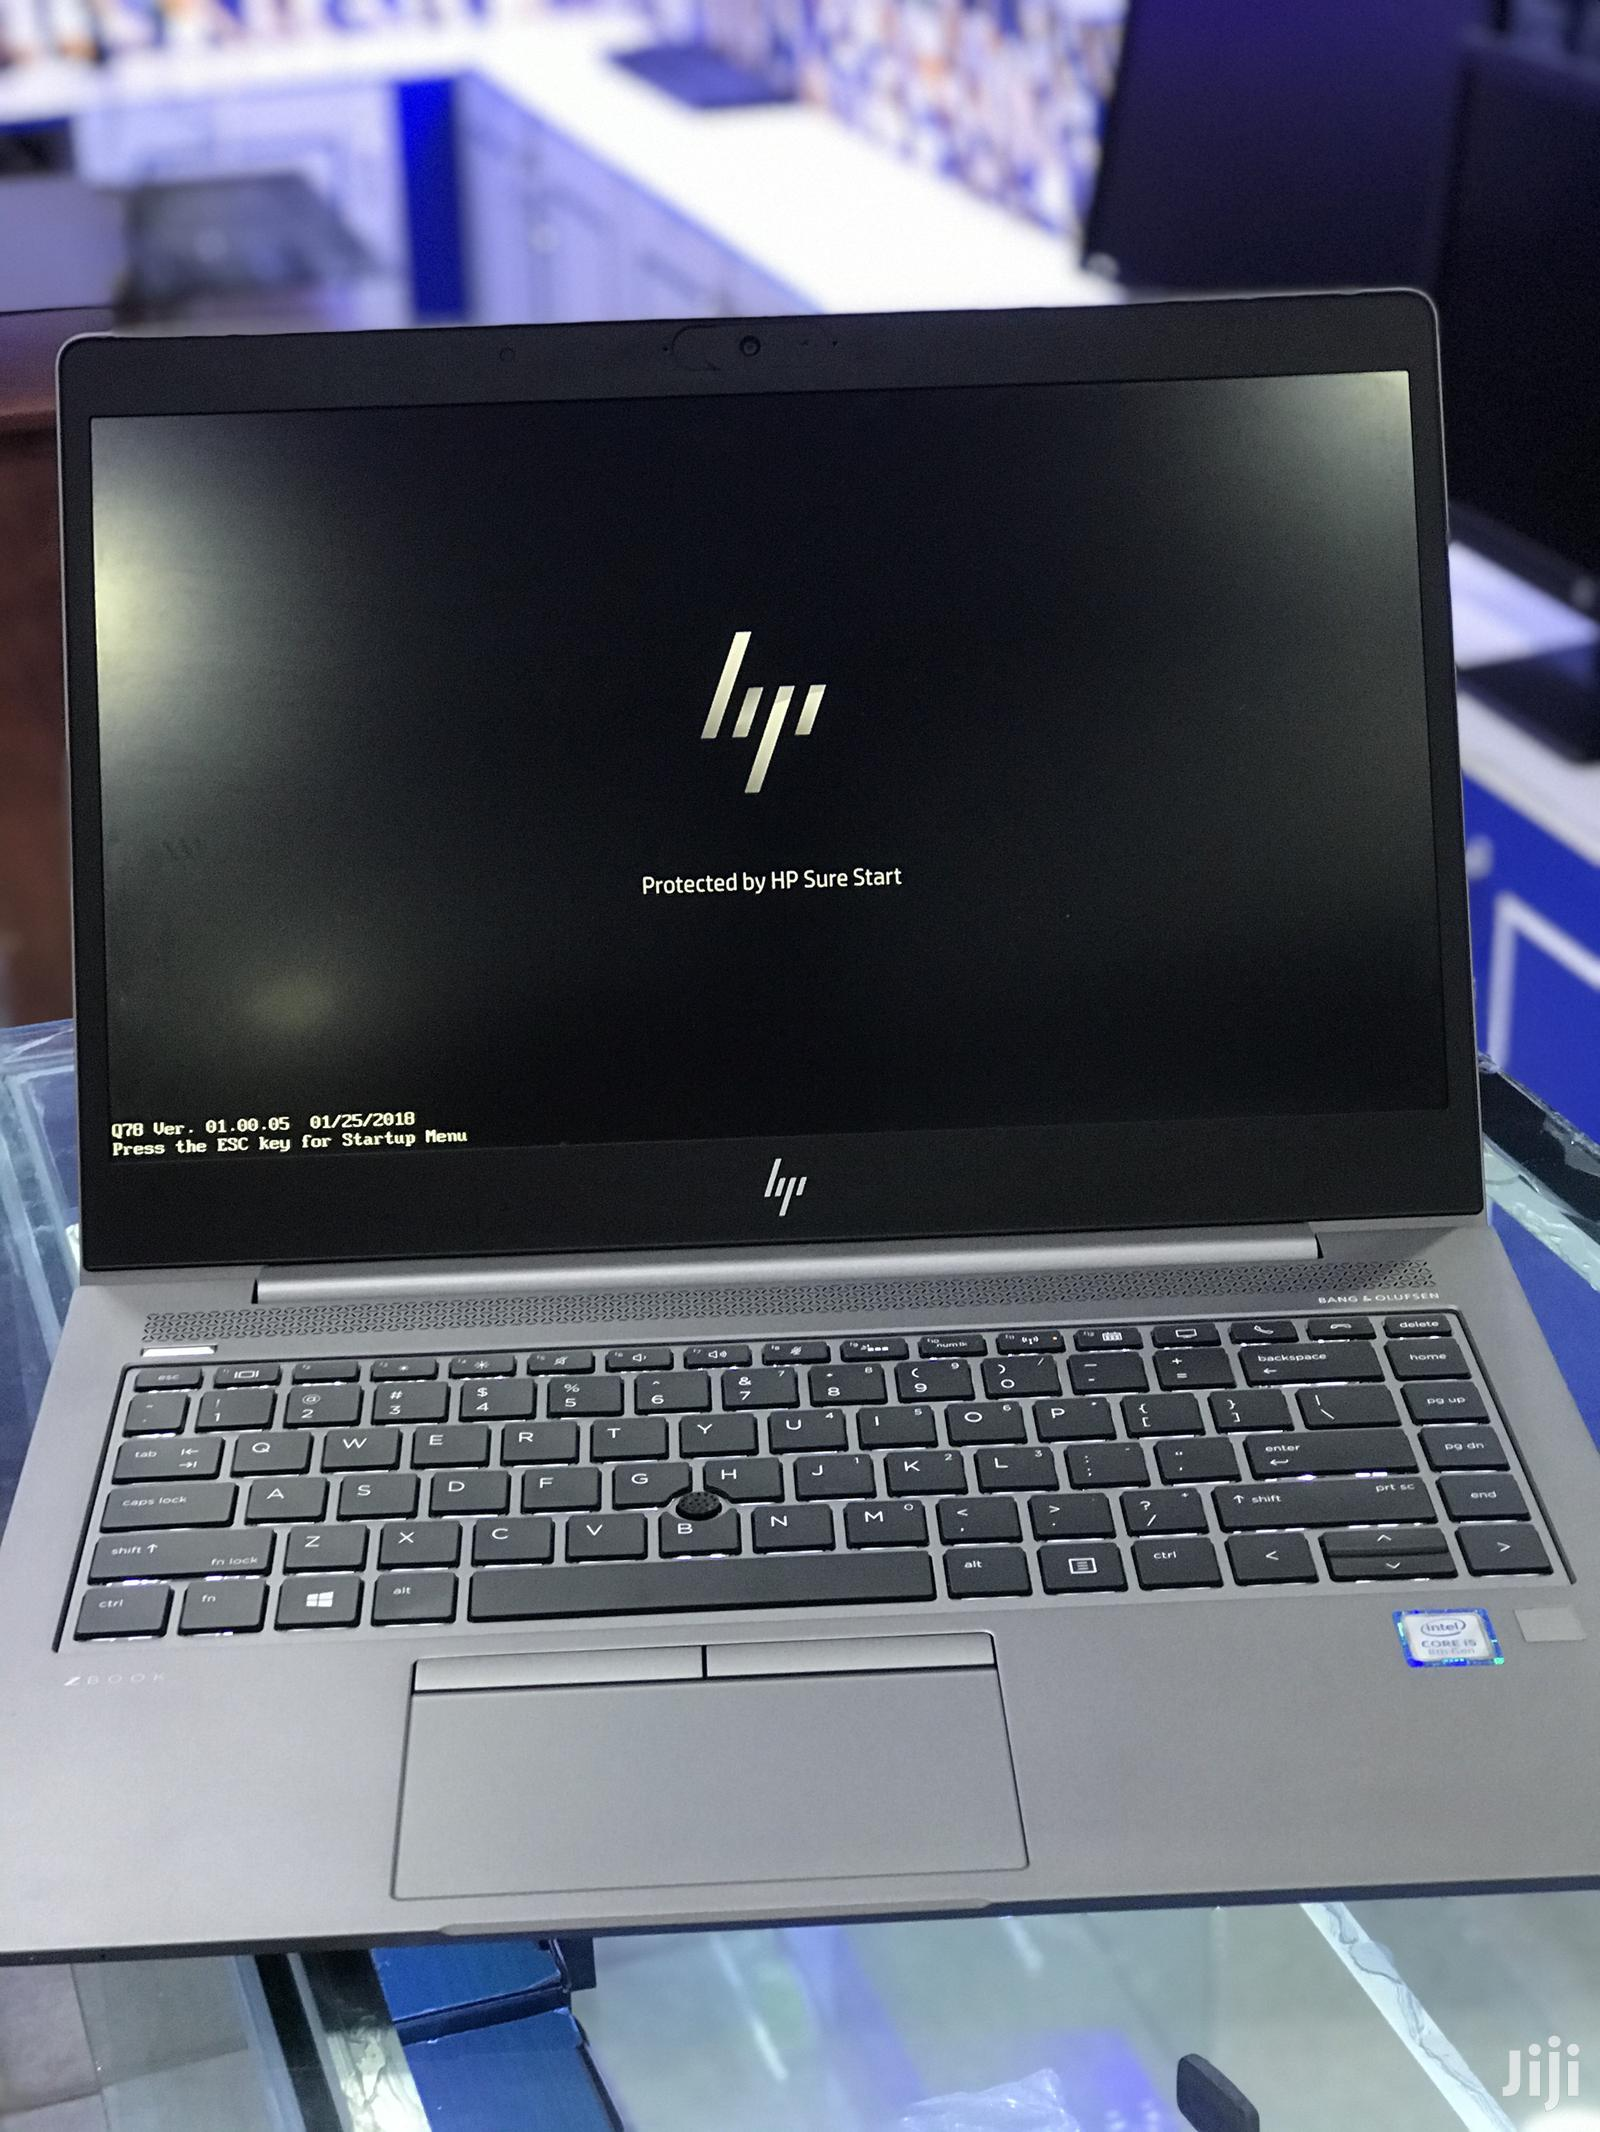 New Laptop HP ZBook 14 8GB Intel Core I5 SSD 256GB | Laptops & Computers for sale in Kampala, Central Region, Uganda